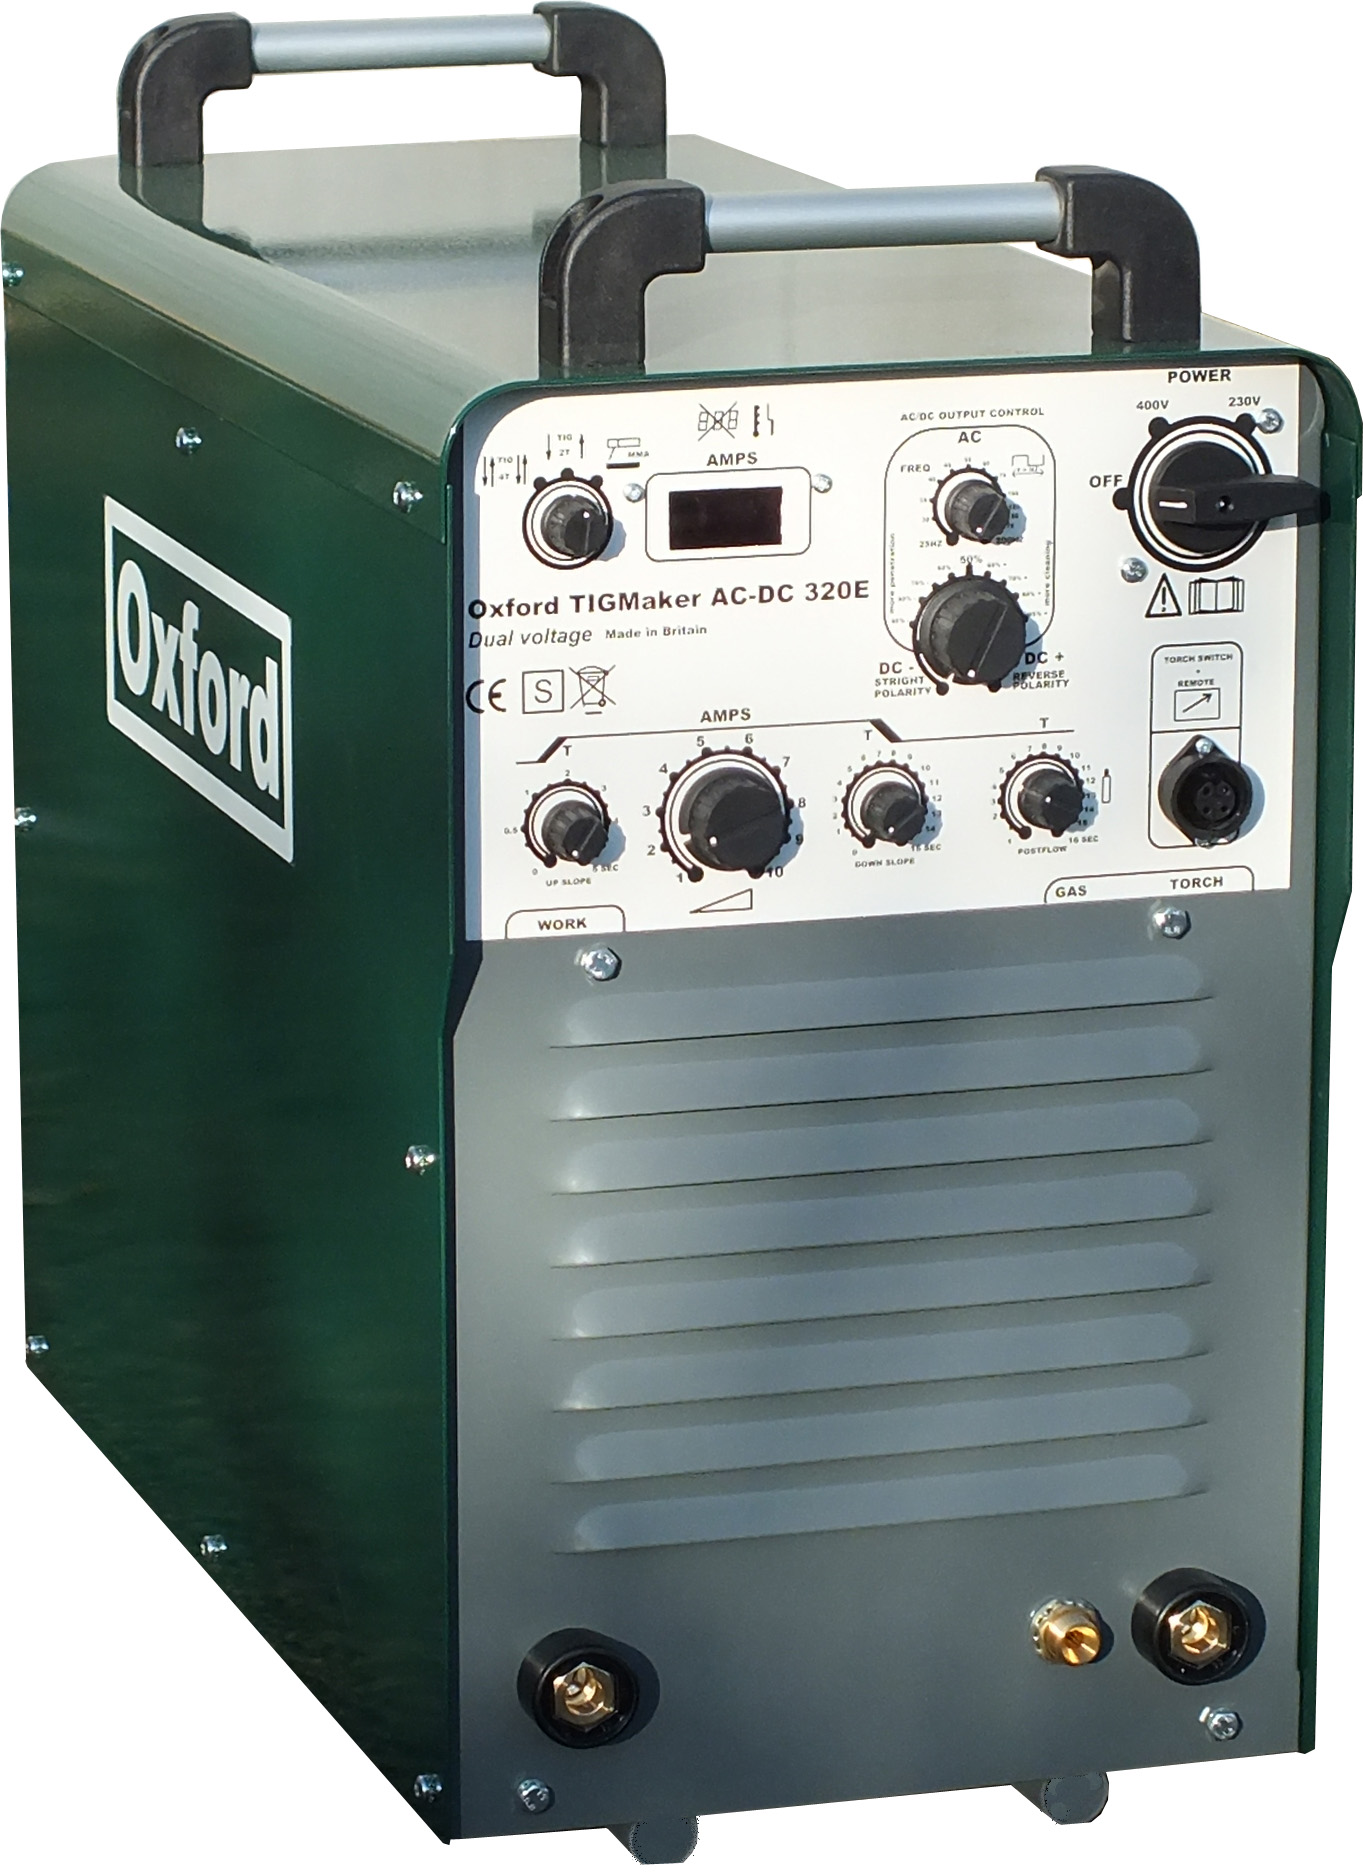 Oxford  TIGMaker 220E dual voltage 110V/230V  Image